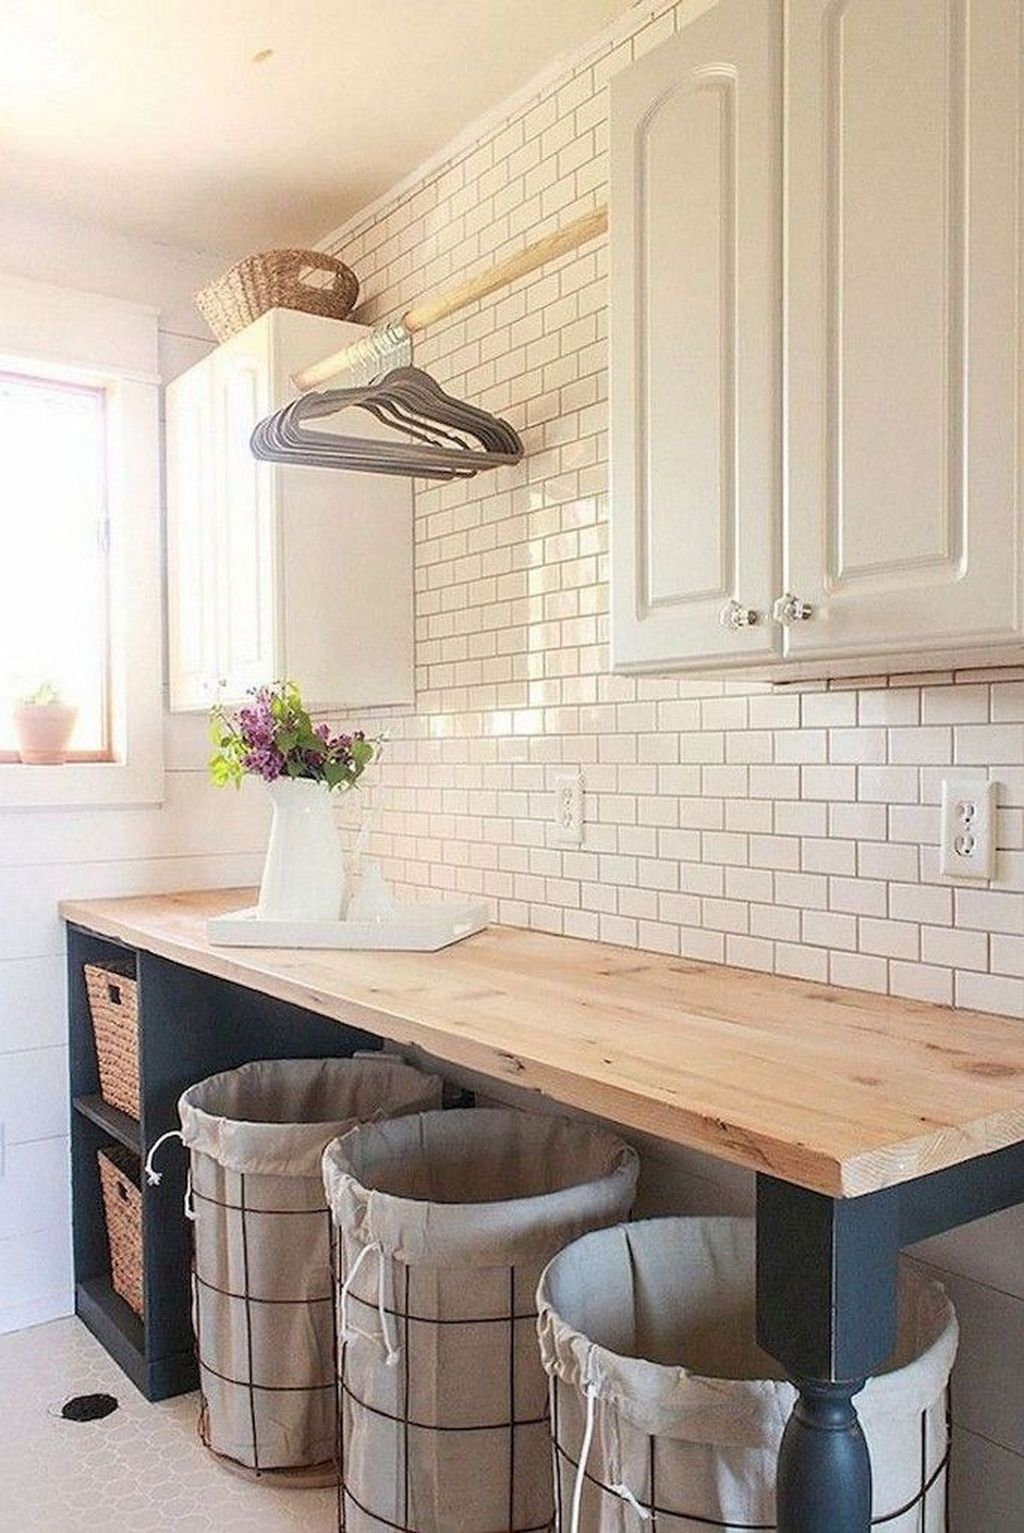 Best Laundry Room Design Ideas To Try This Season 24